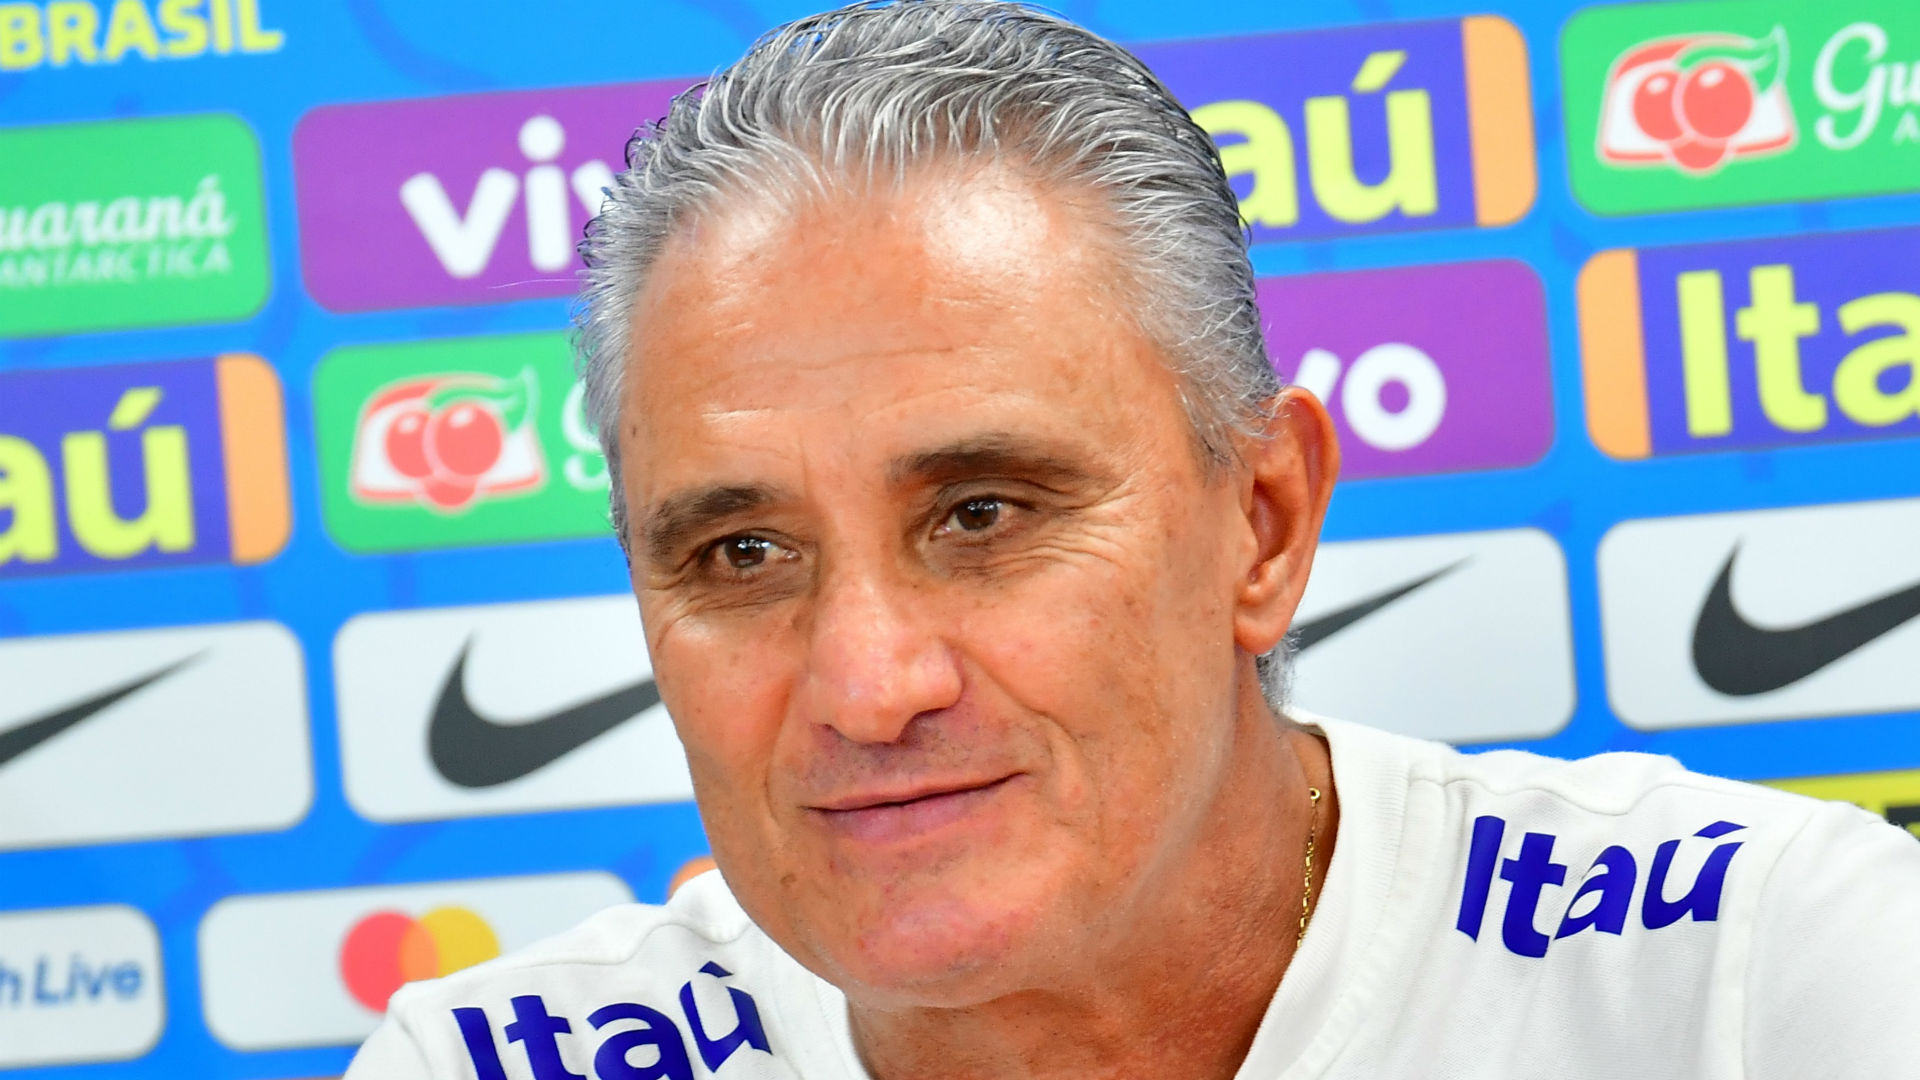 Tite: Messi comparisons with Pele have 'no credibility'